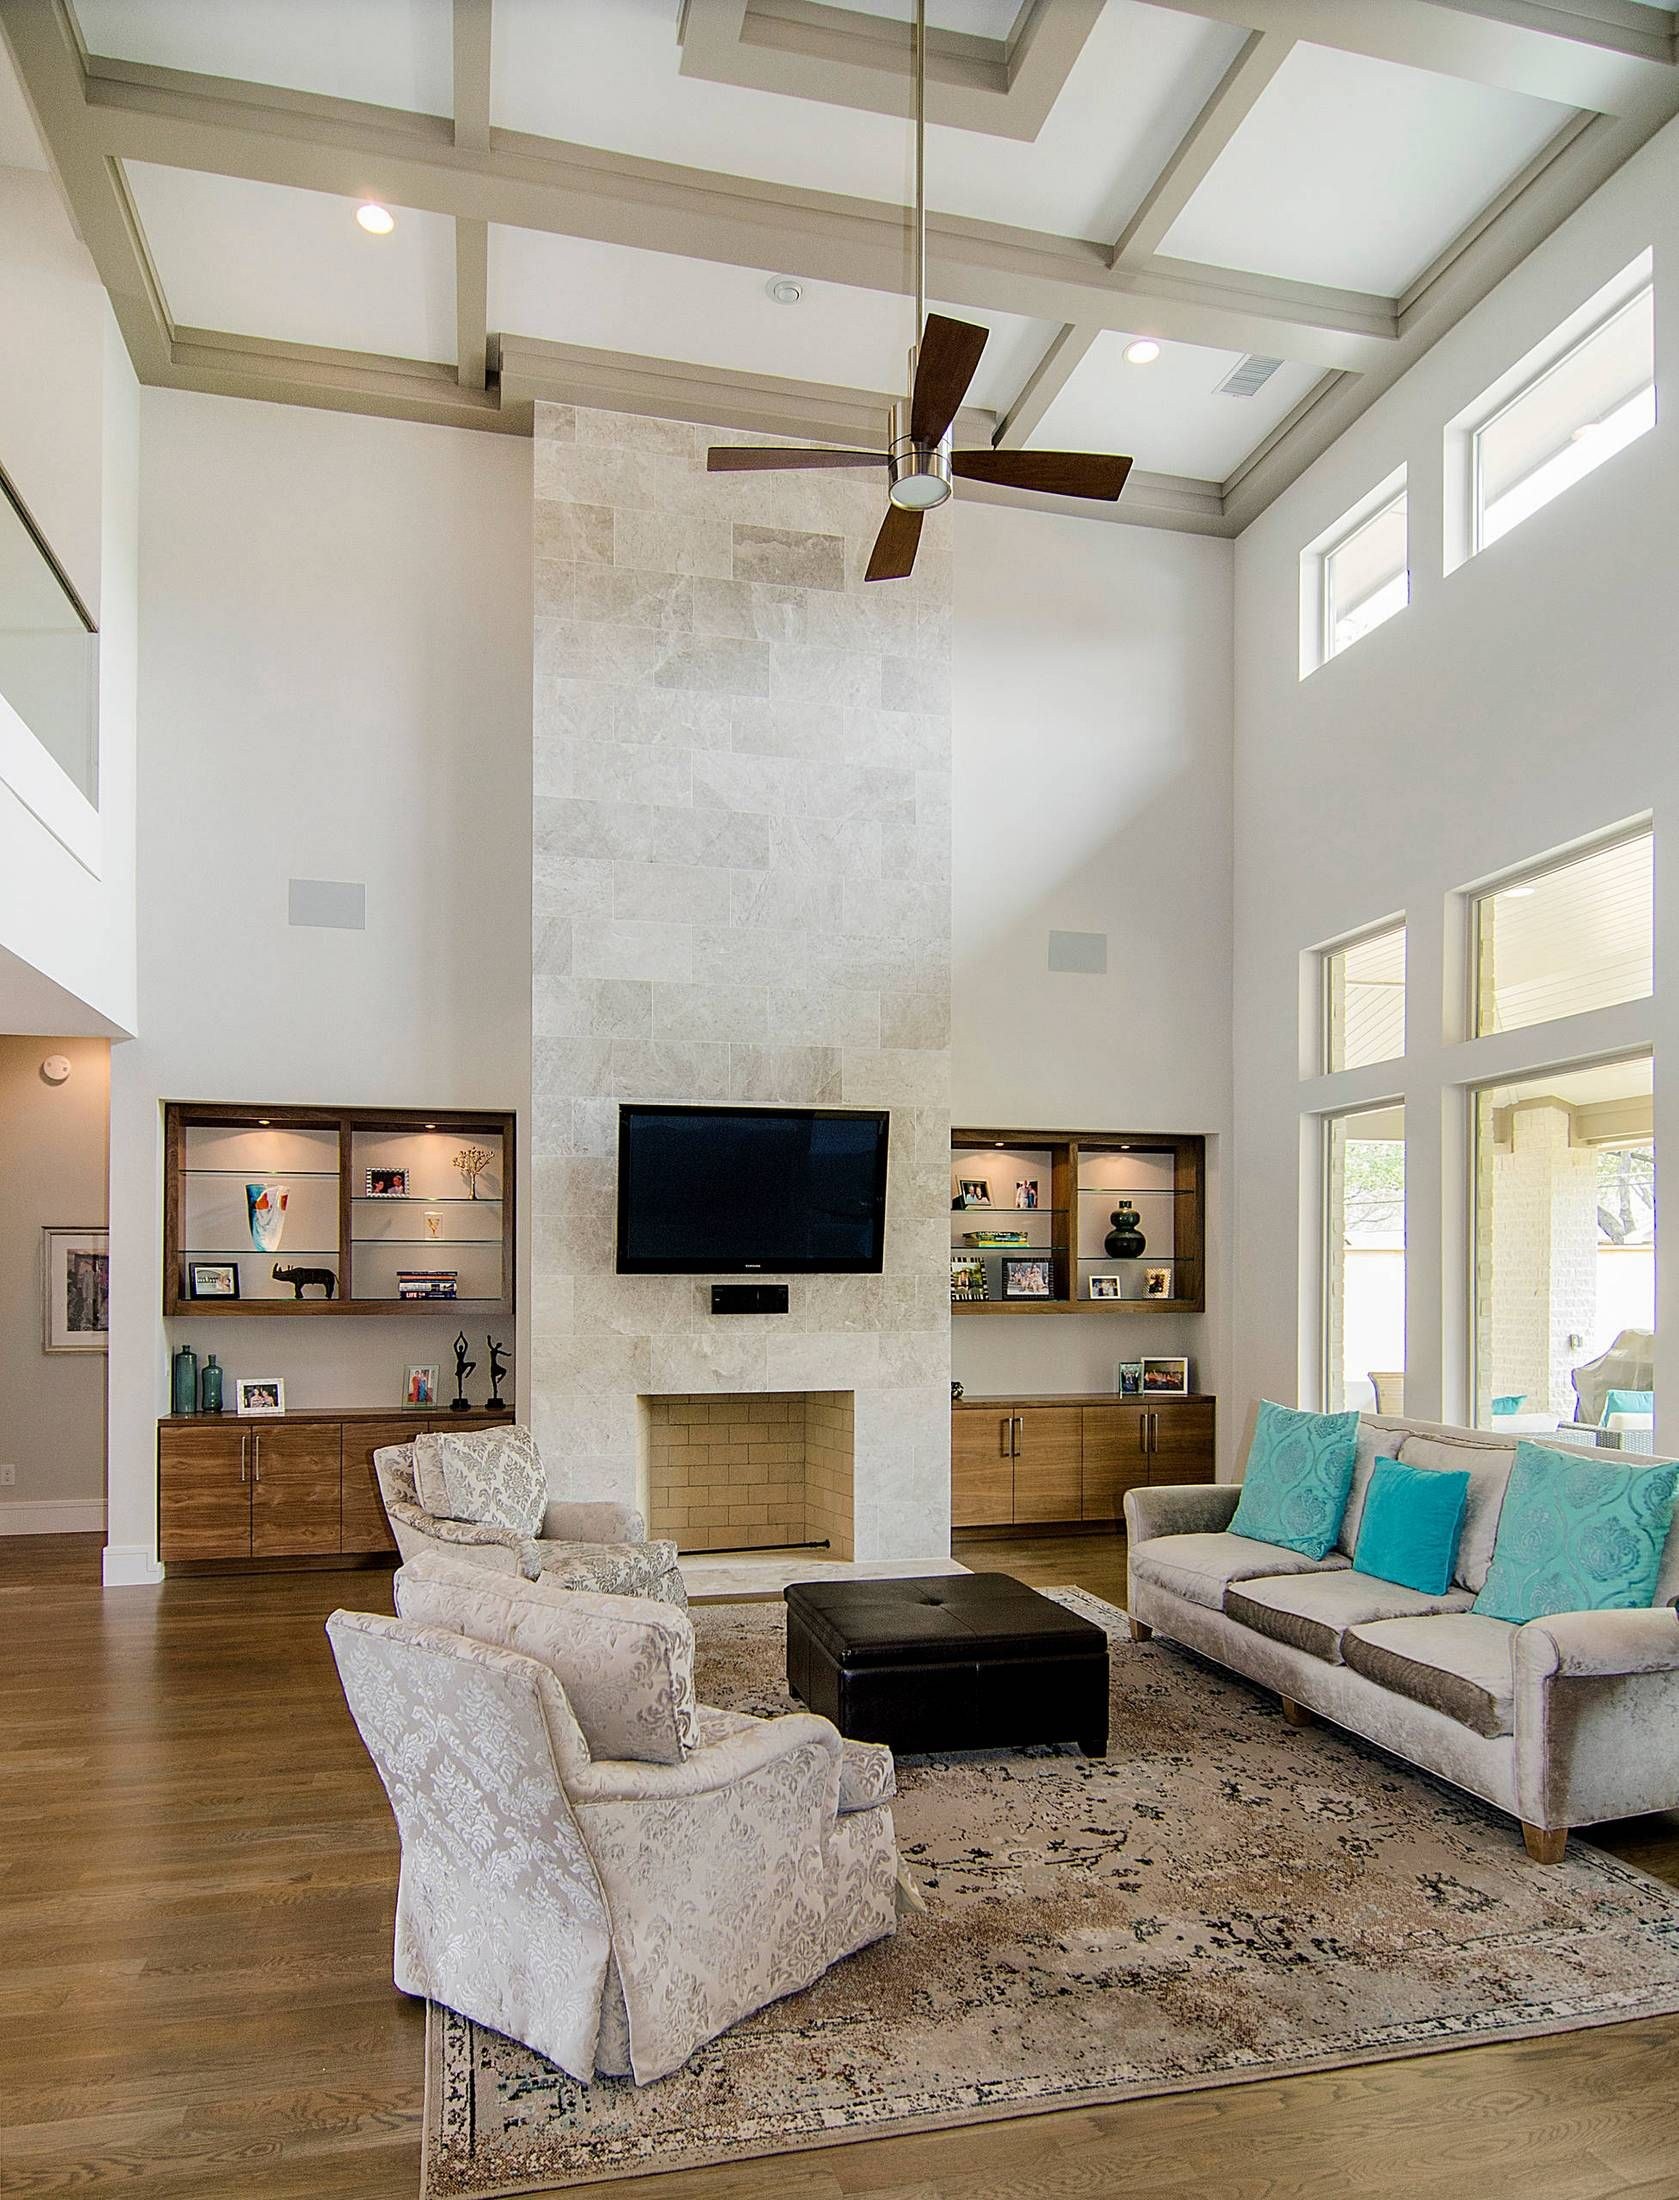 Fantastic High Ceiling Design With Stylish Fan And